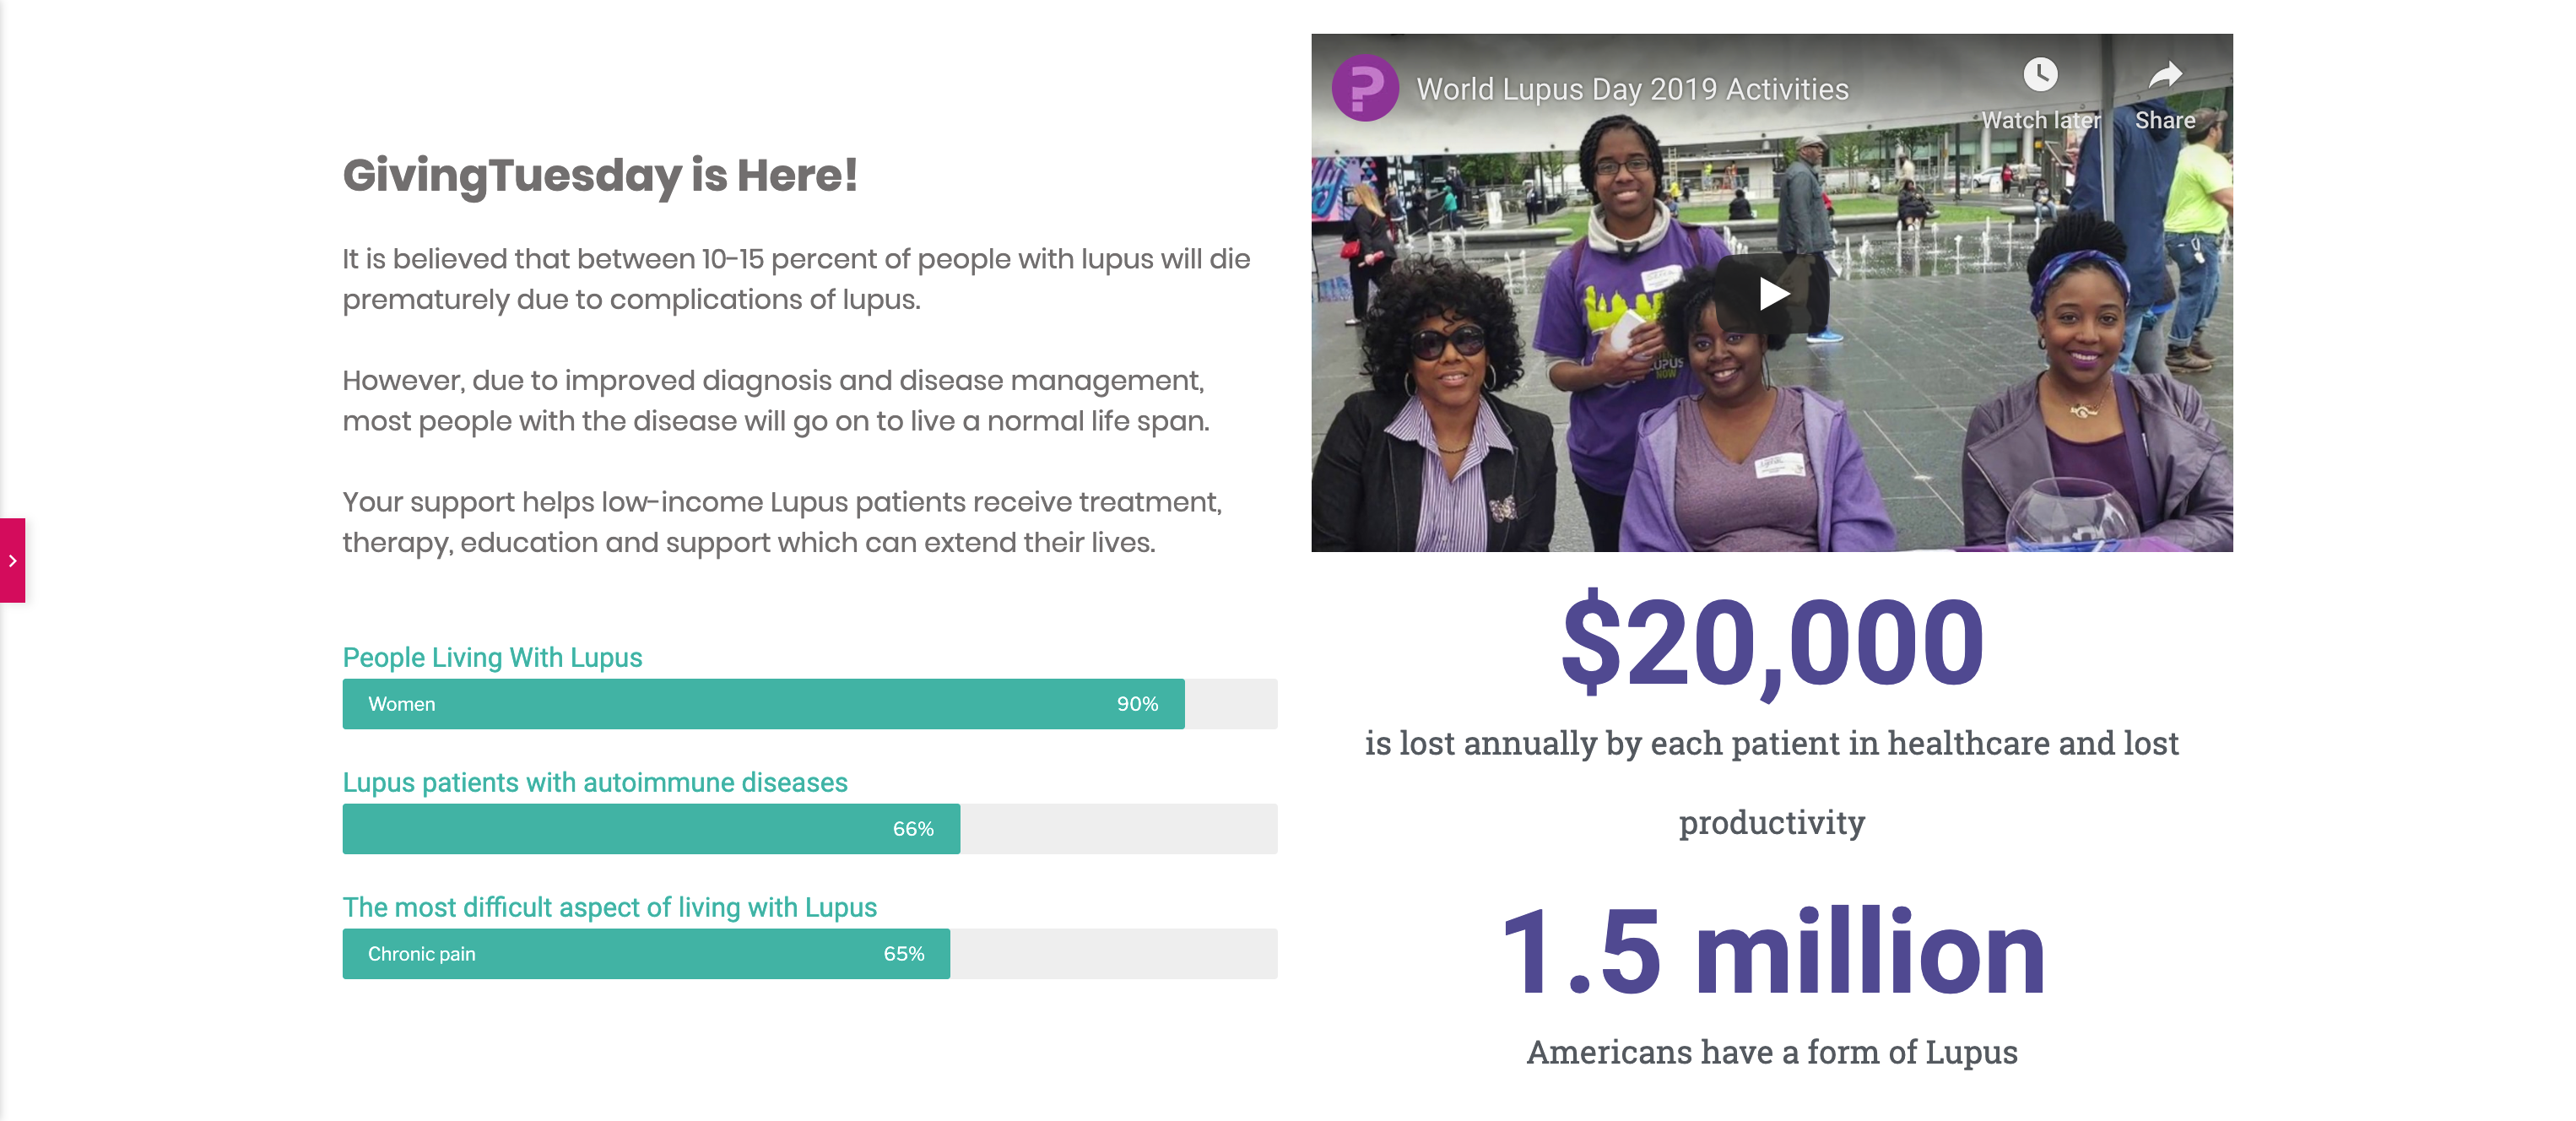 Our Giving Tuesday landing page compels donors to give by briefly explaining the cause and providing detailed statistics using a progress bar to visualize the data and counters to emphasize numerical information.